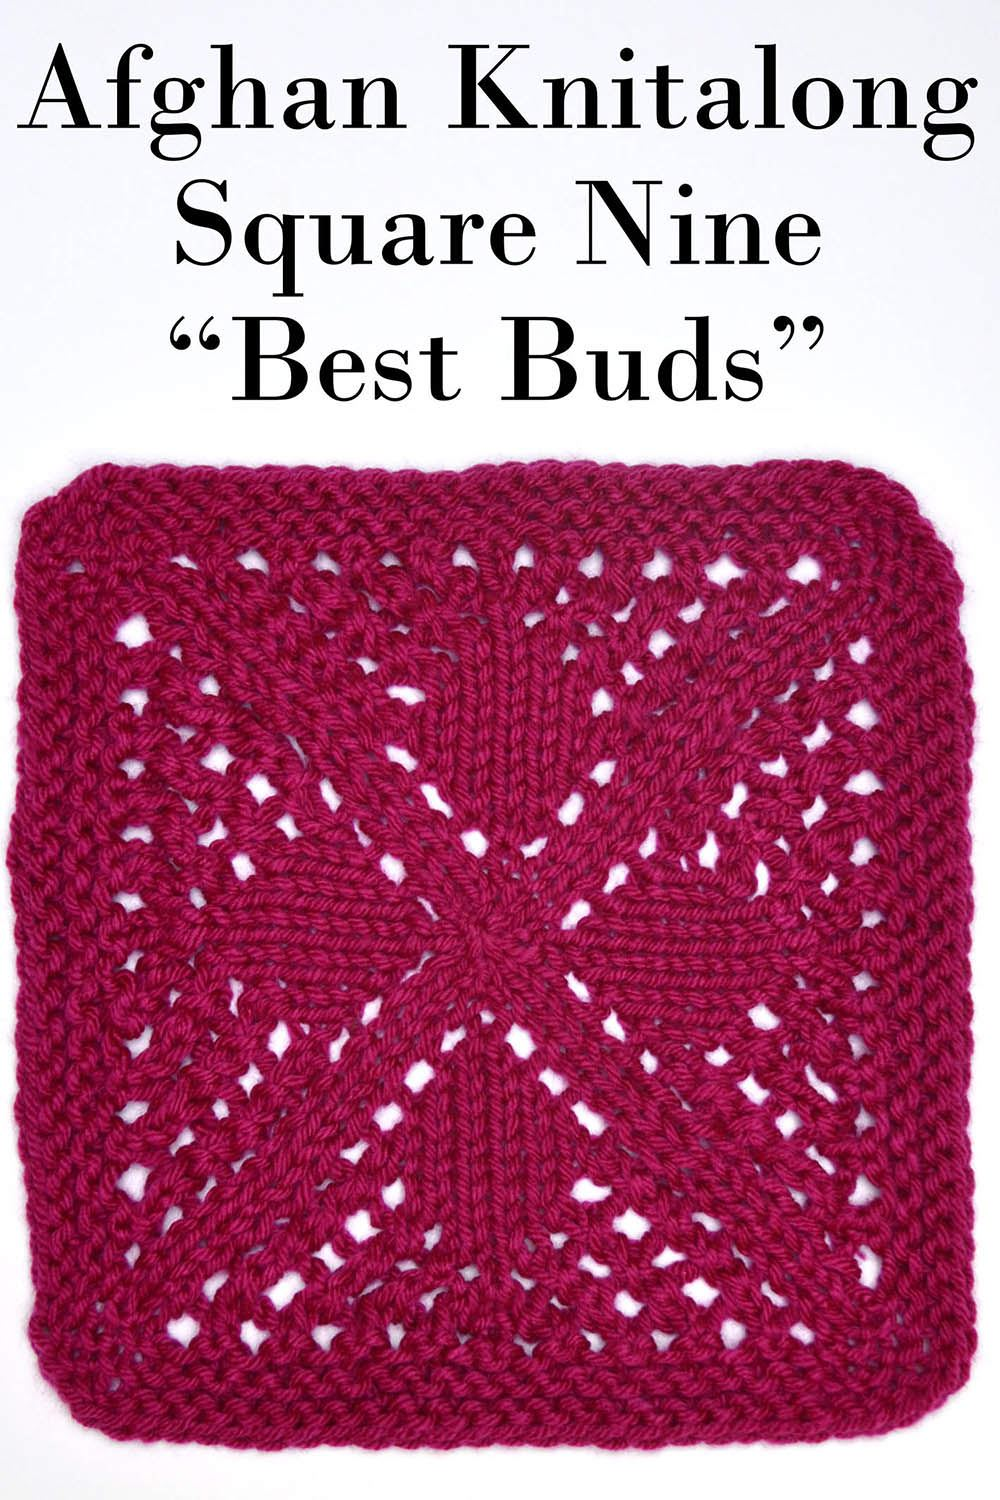 Afghan Knitalong Square 9 - Best Buds Pattern Universal Yarn